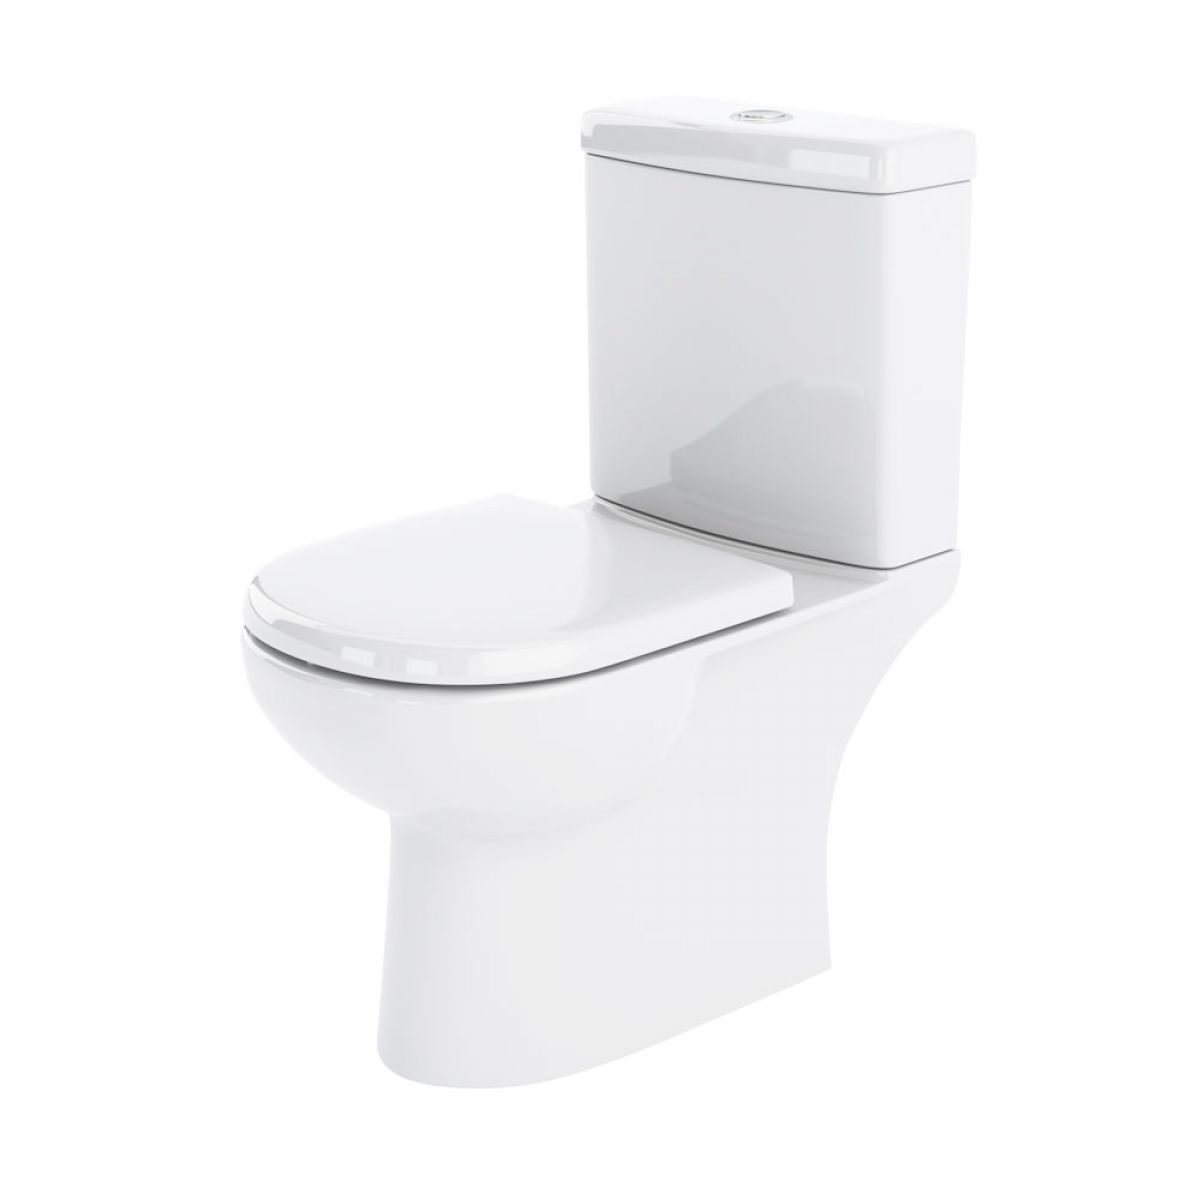 Nuie Lawton Close Coupled Toilet with Soft Close Seat